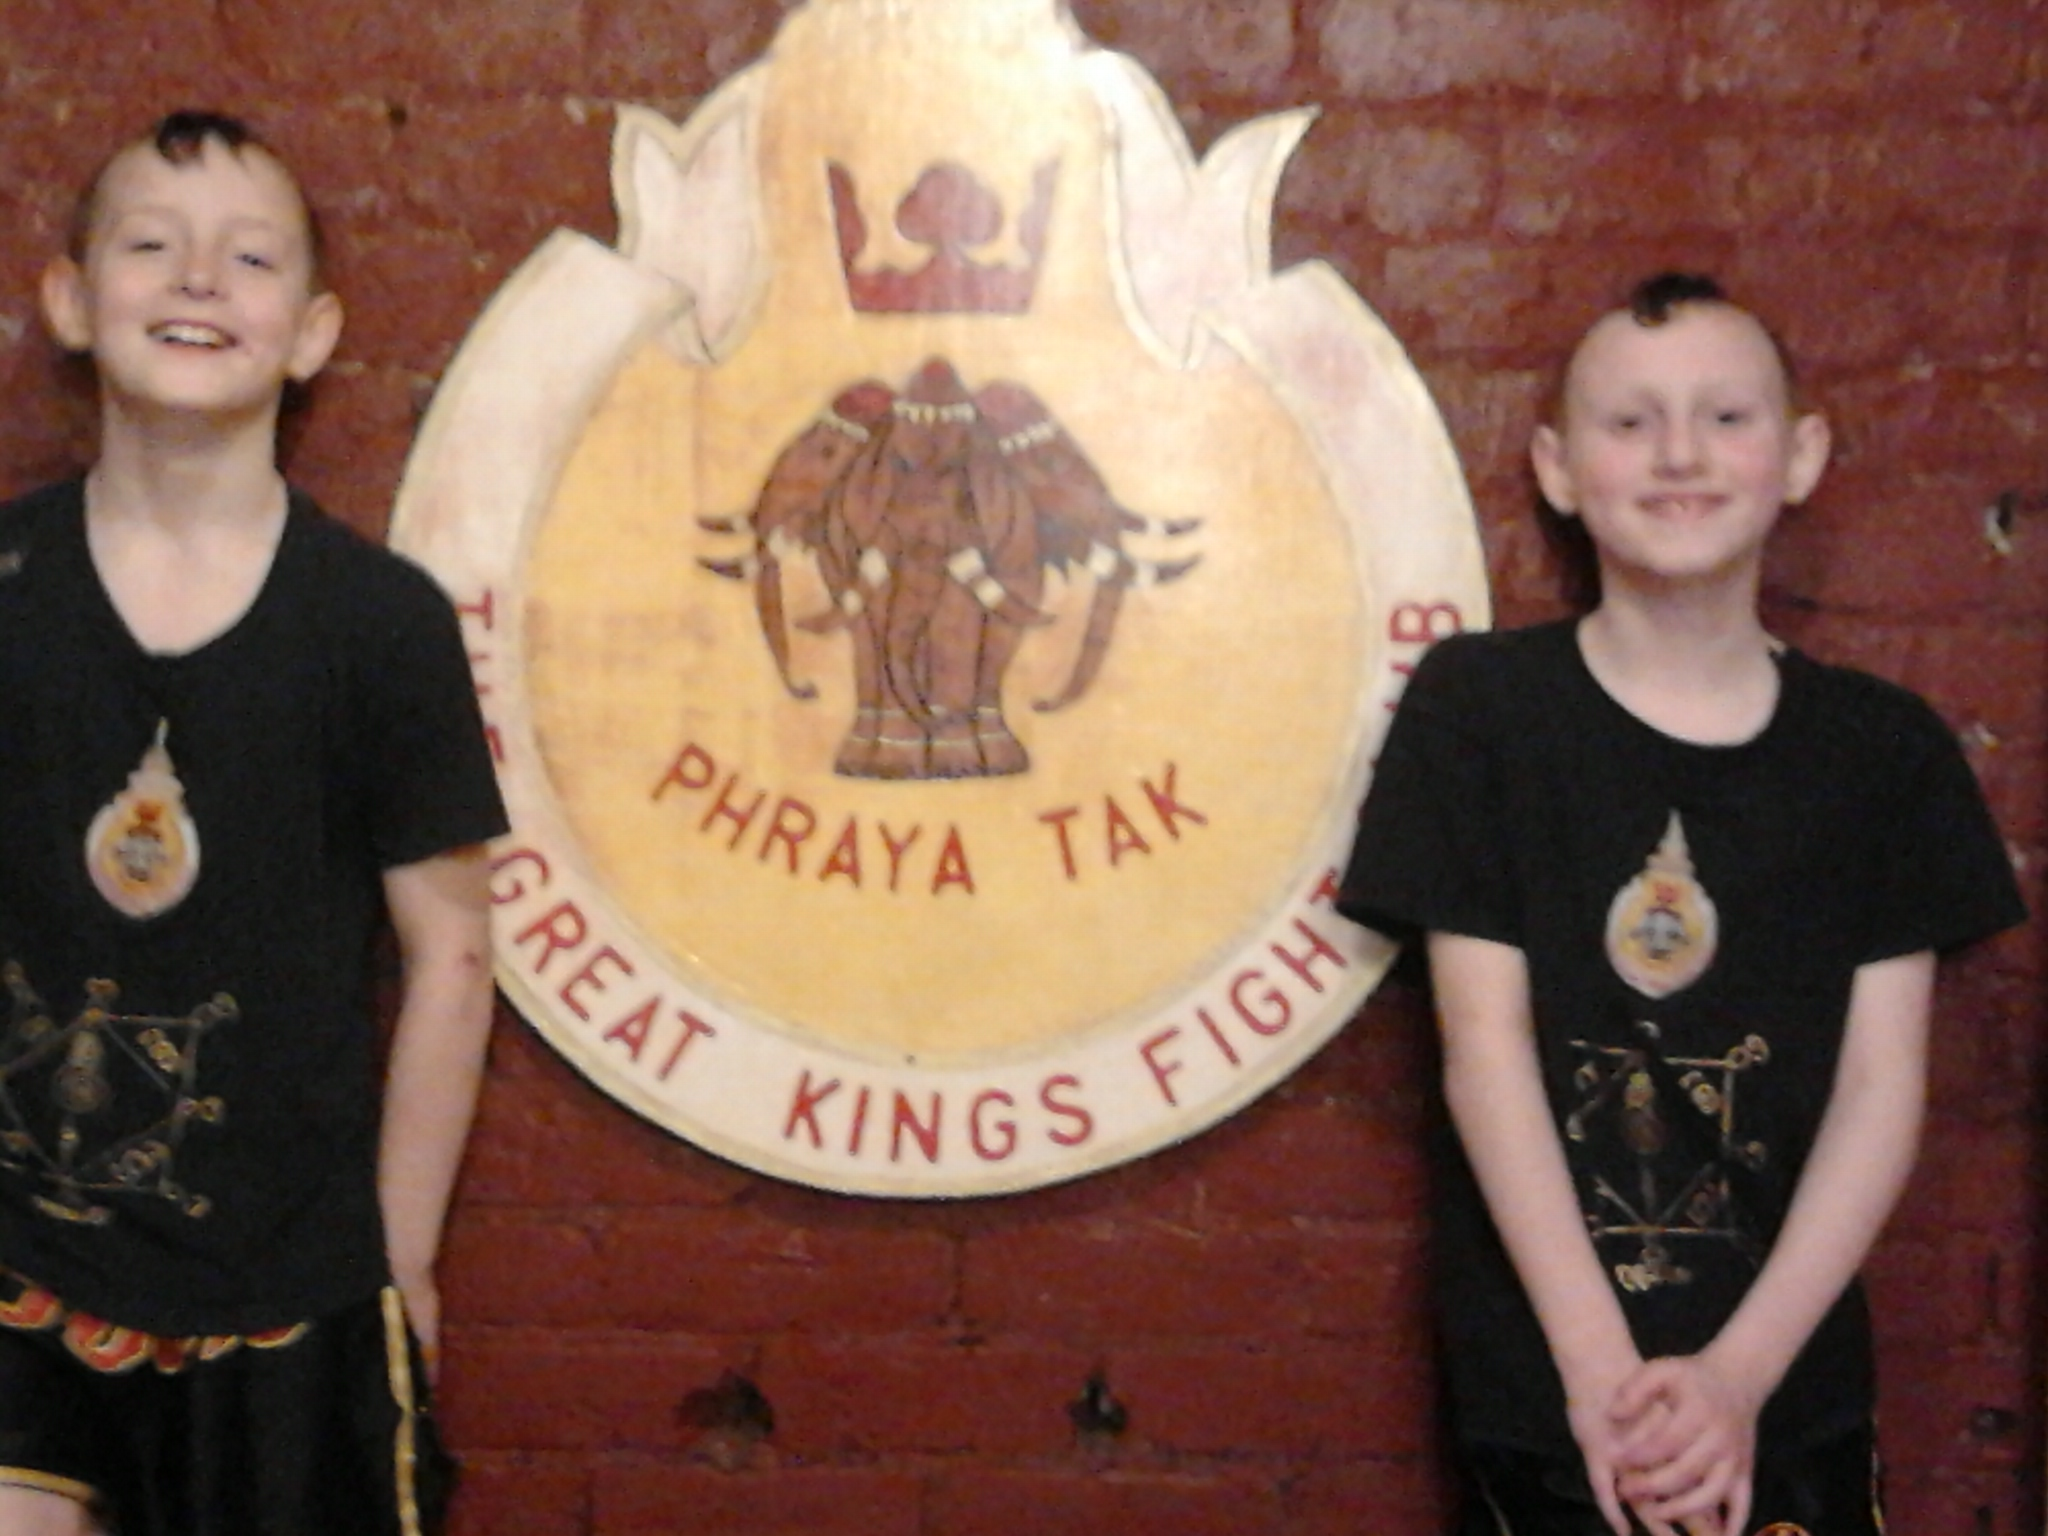 Billy and Stephen Collinge - Great Kings Gym